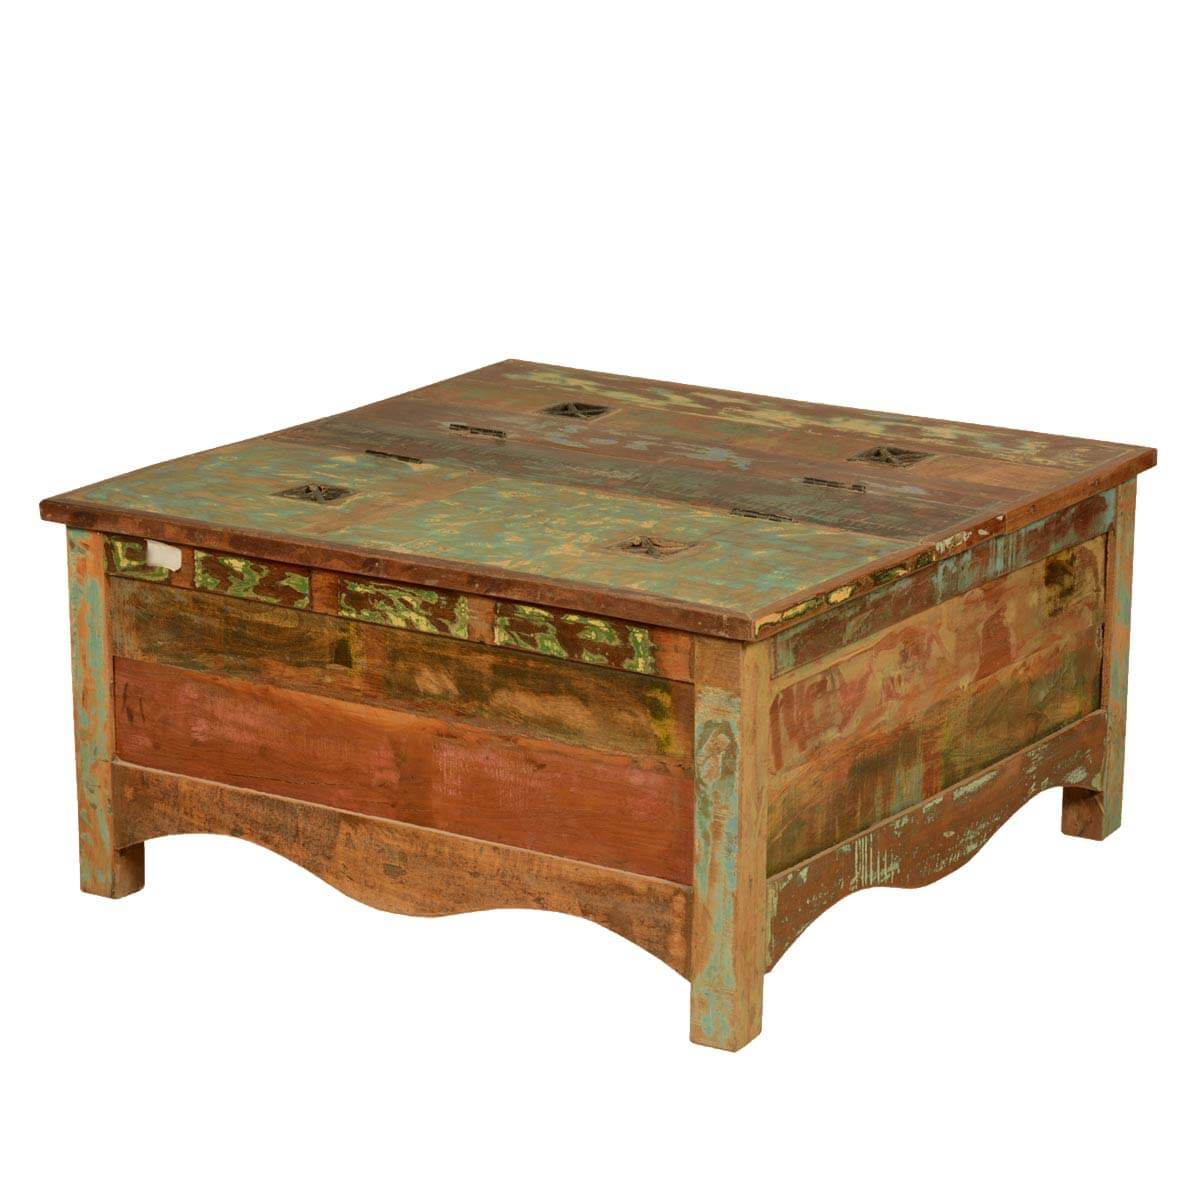 Rustic reclaimed wood 35 5 square double top coffee table for Reclaimed coffee table